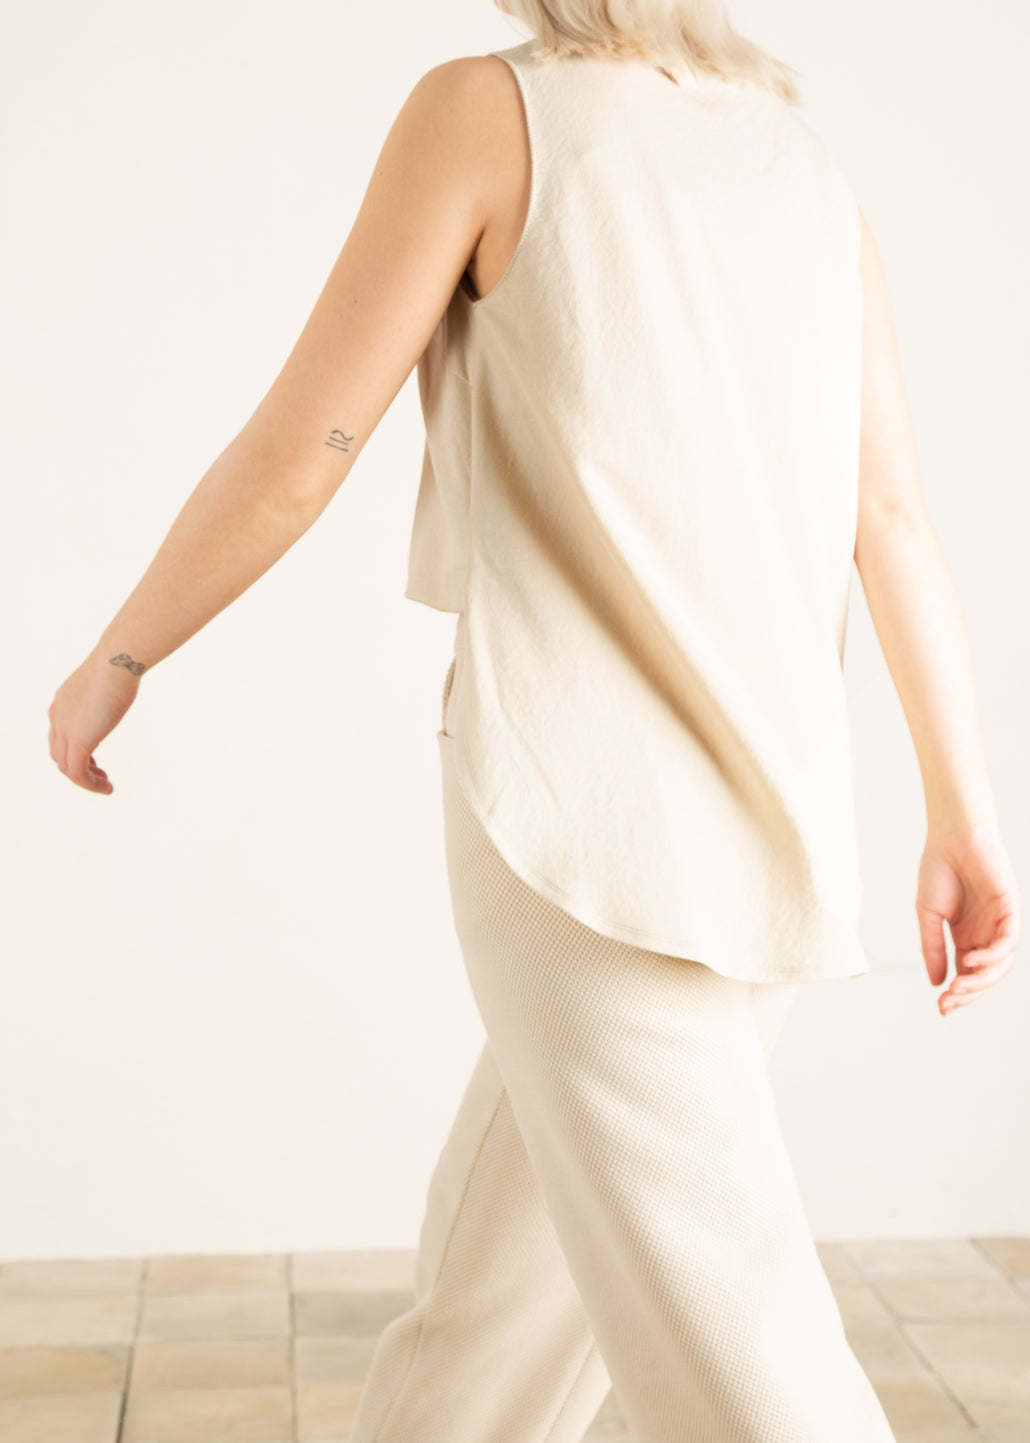 Achterkant dames top in beige tint